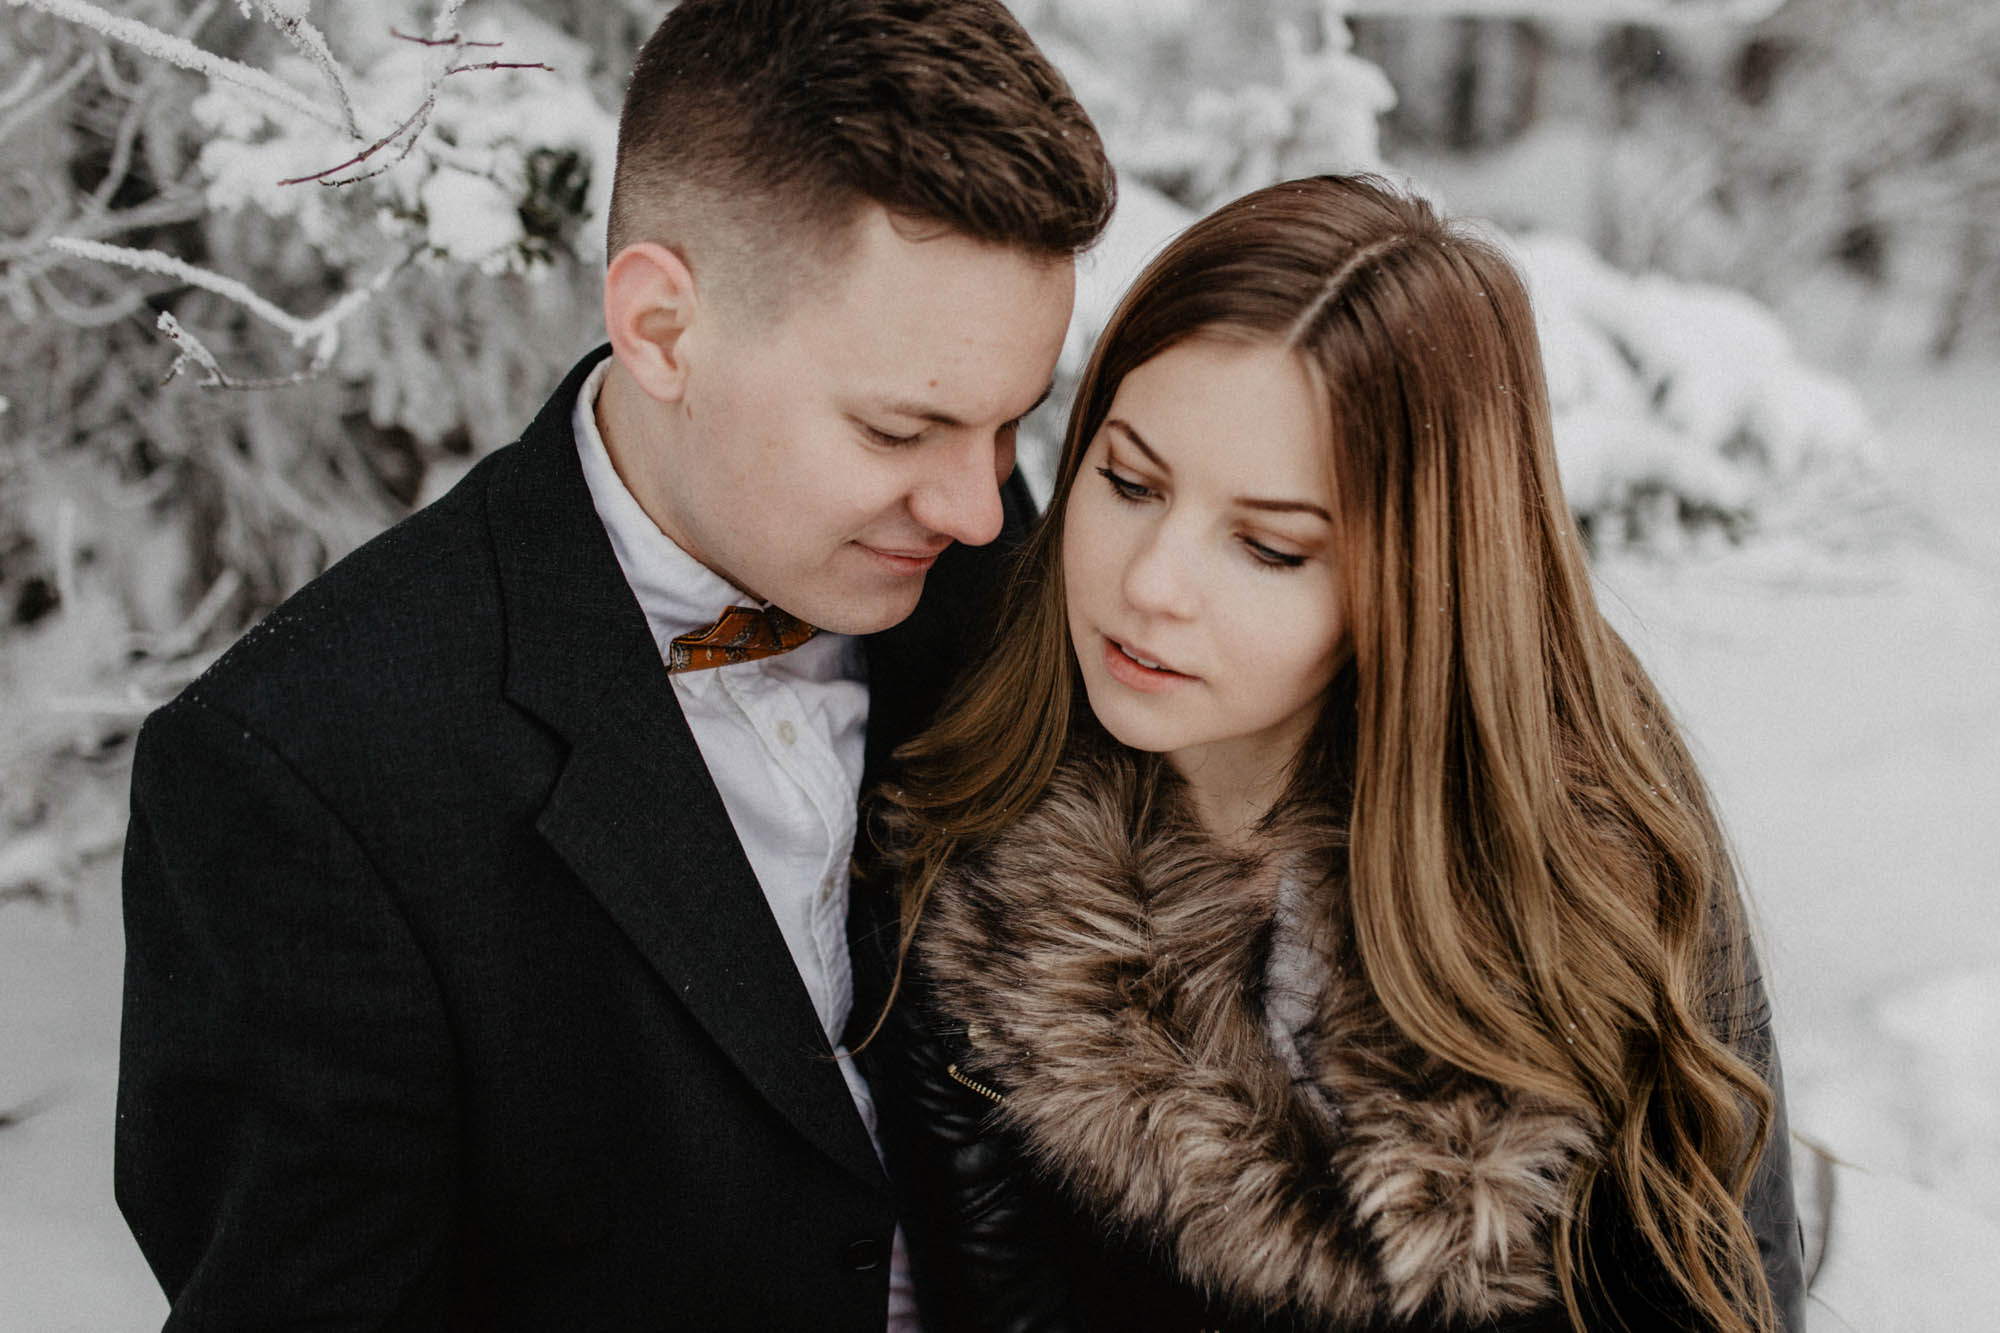 ashley_schulman_photography-winter_wedding_tampere-51.jpg